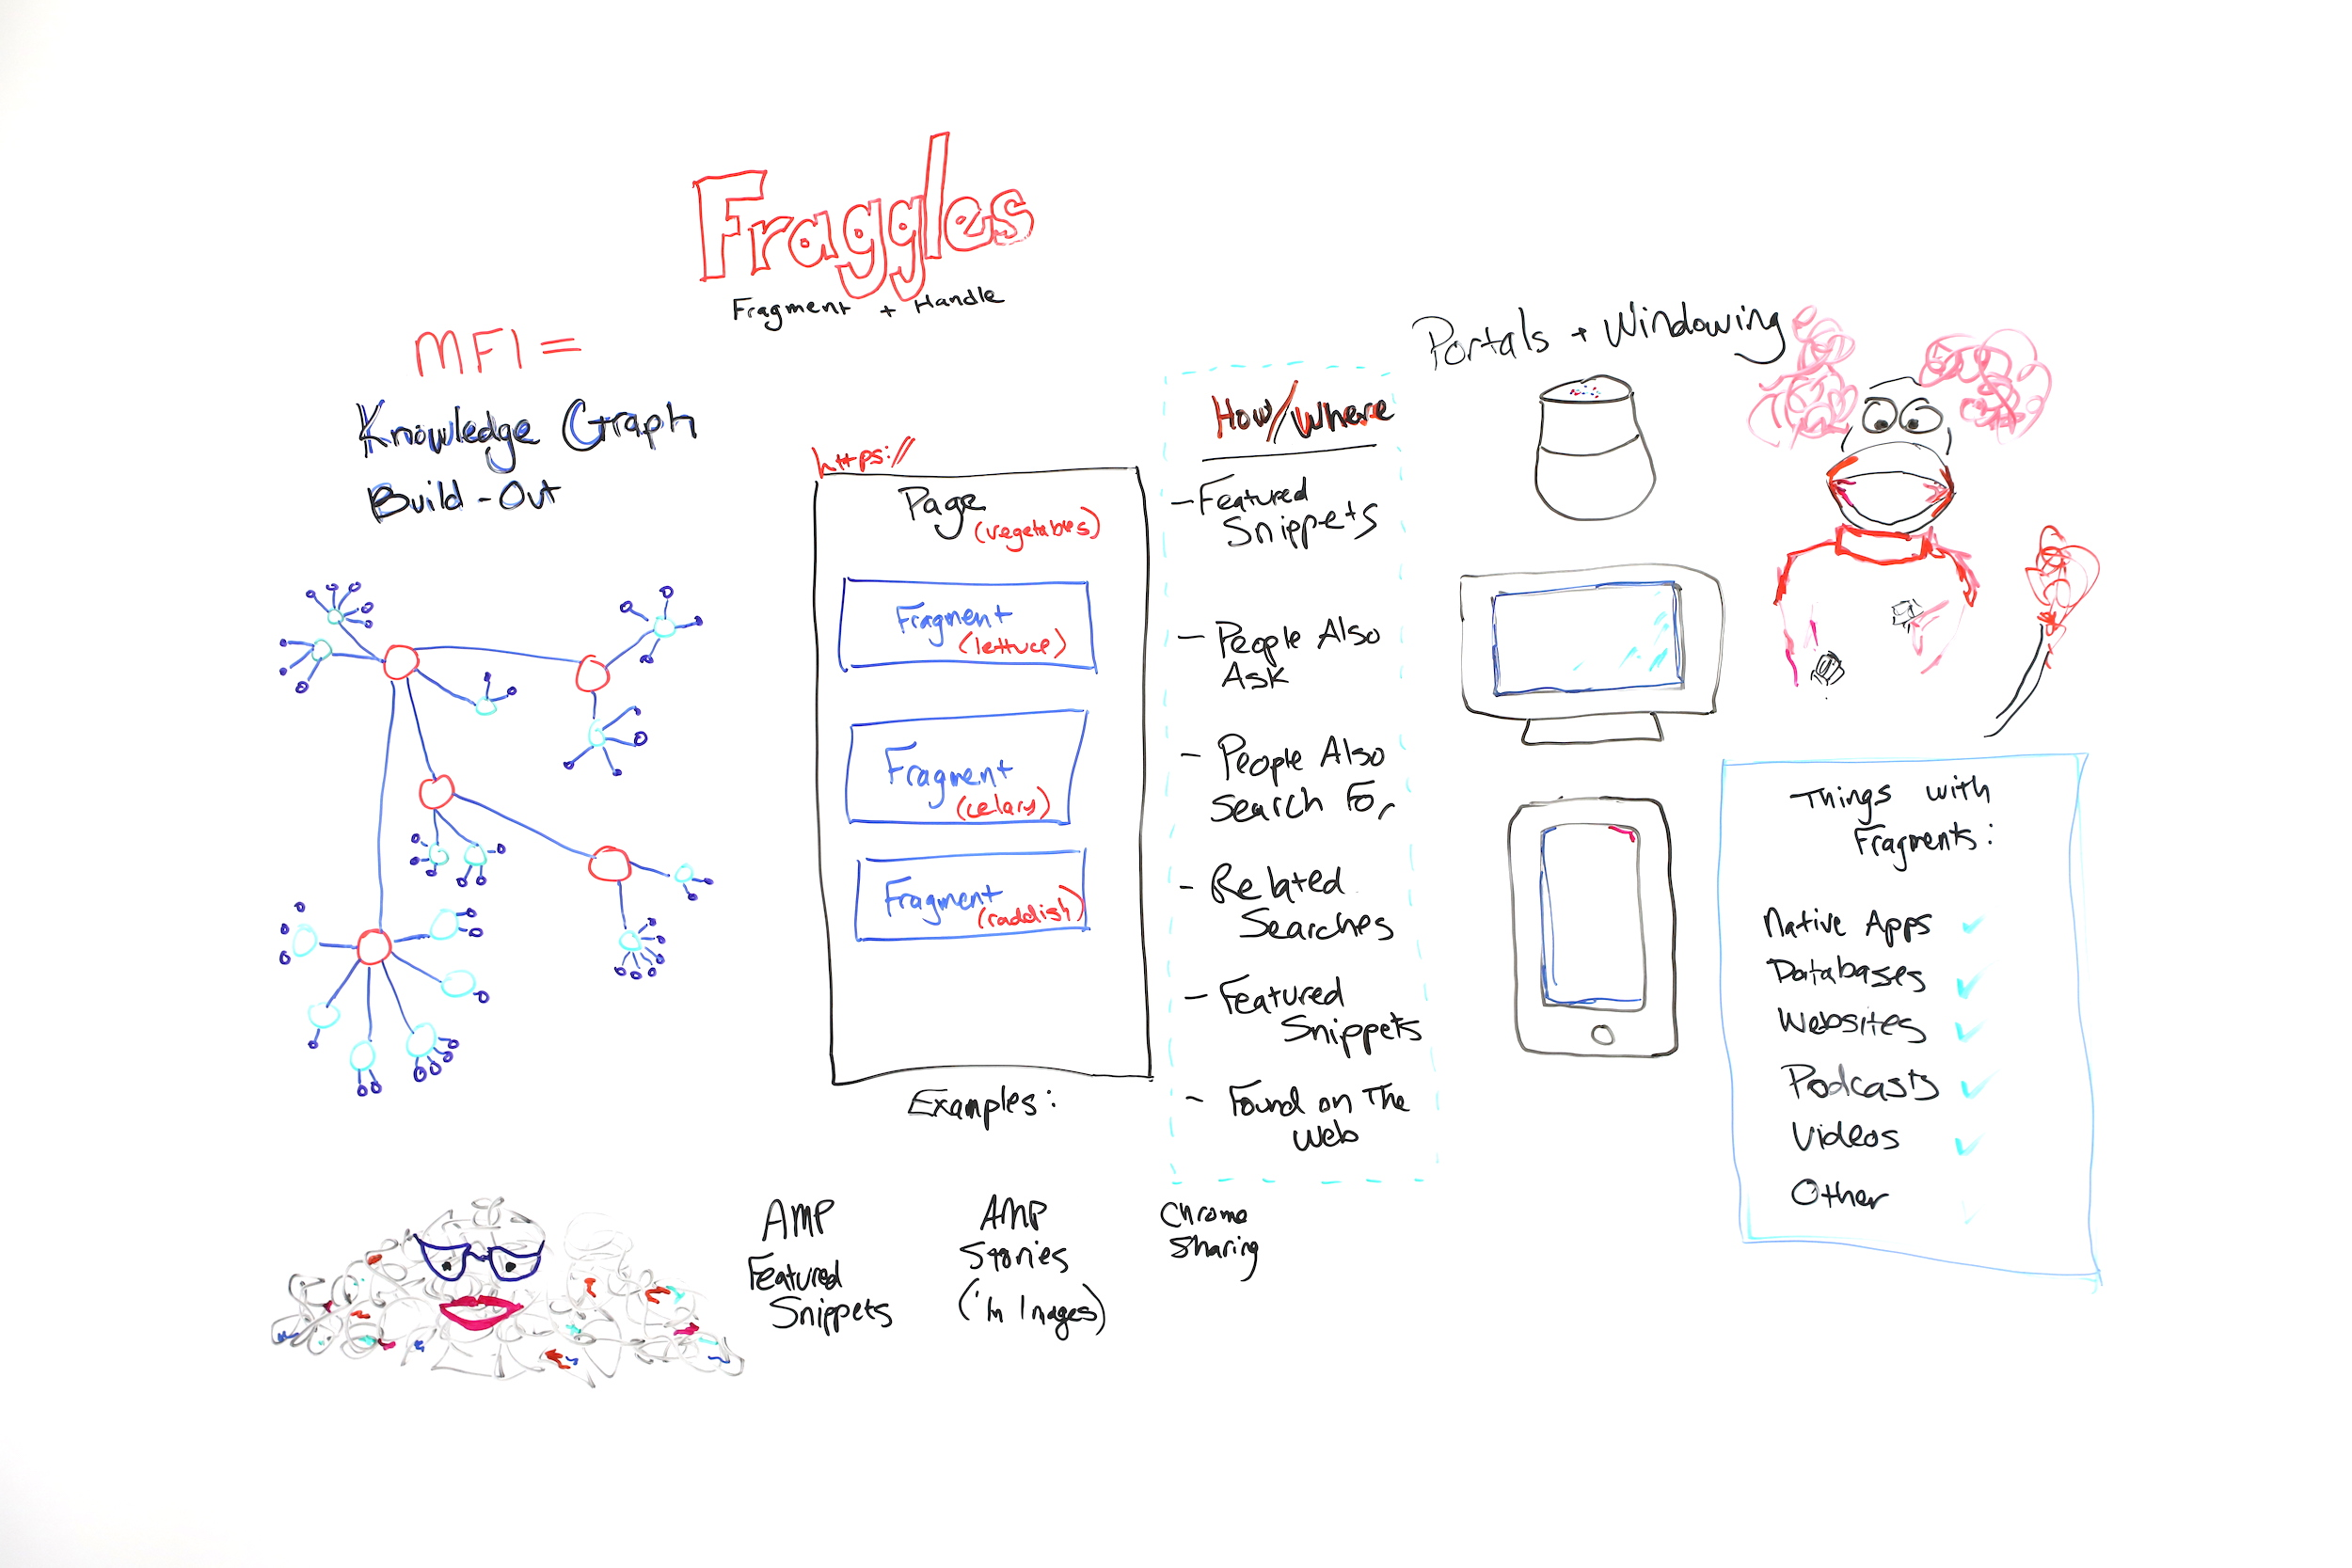 All About Fraggles (Fragment + Handle) - Whiteboard Friday 1